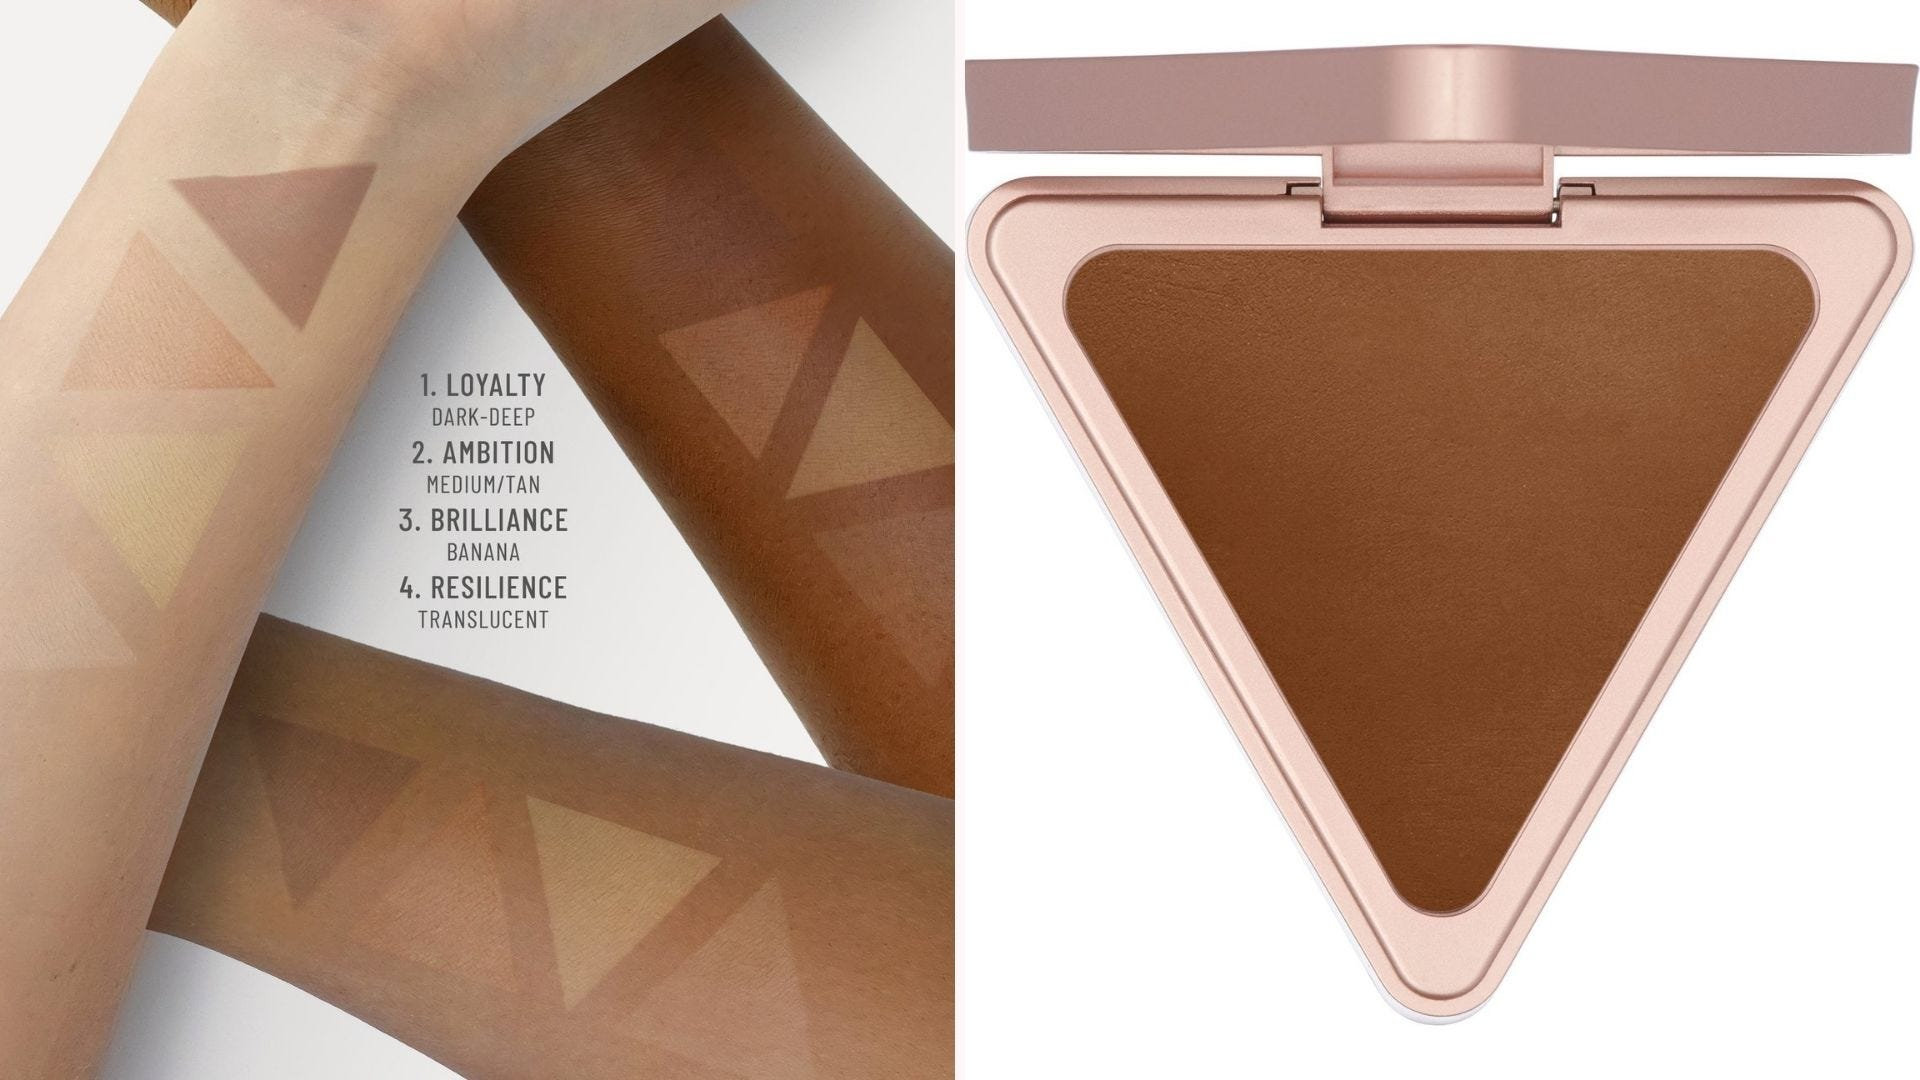 On the left, three forearm swatches of LYS setting powder on different skin tones, and on the right, a setting powder compact on a white background.